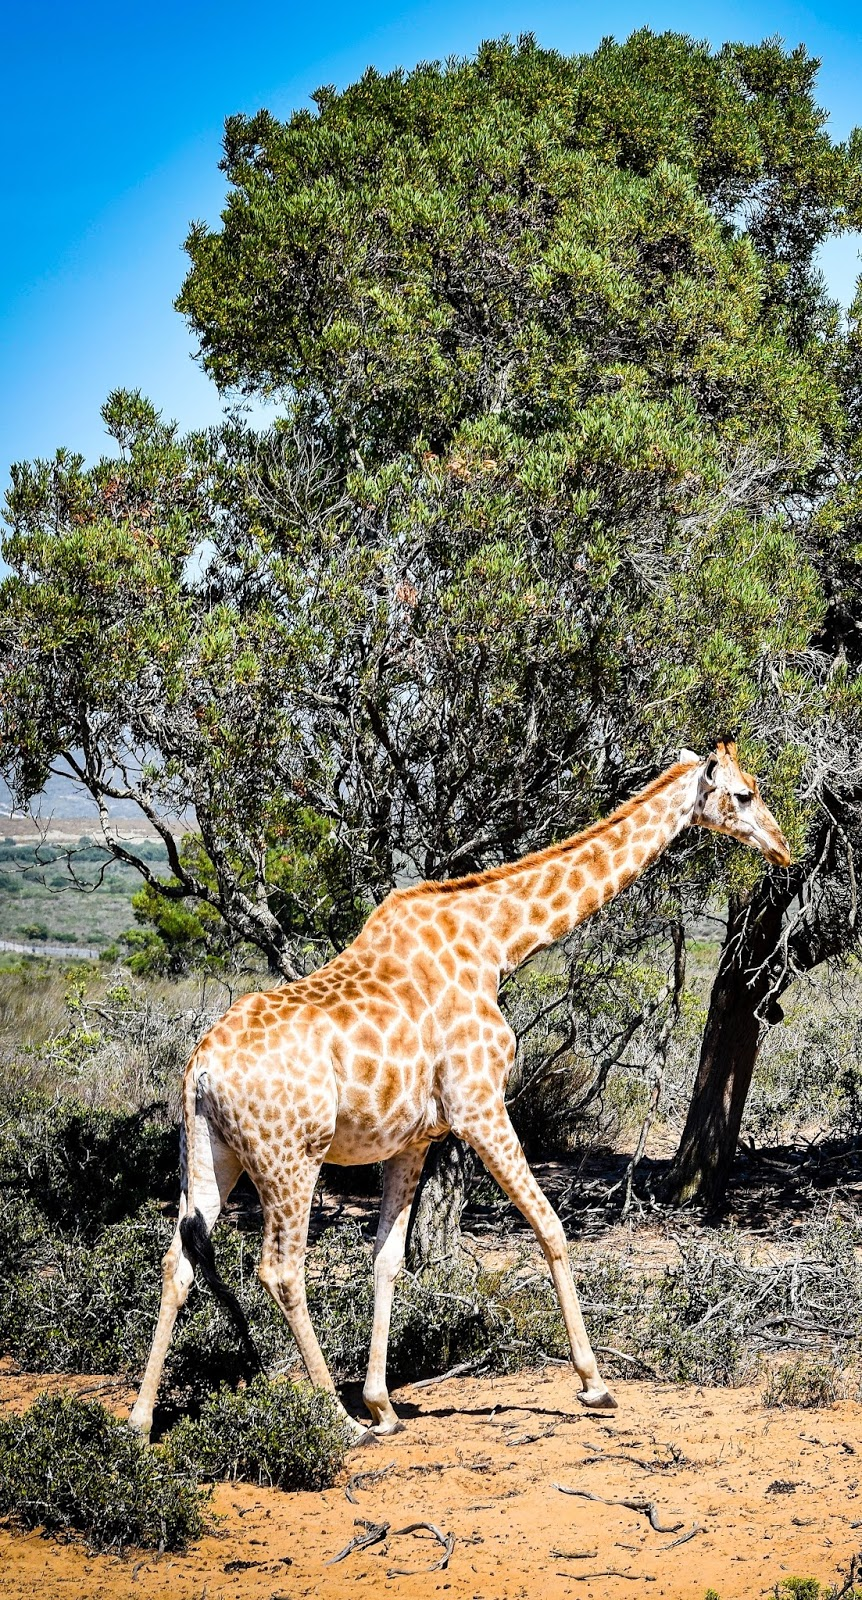 Picture of a giraffe in the dry savannah